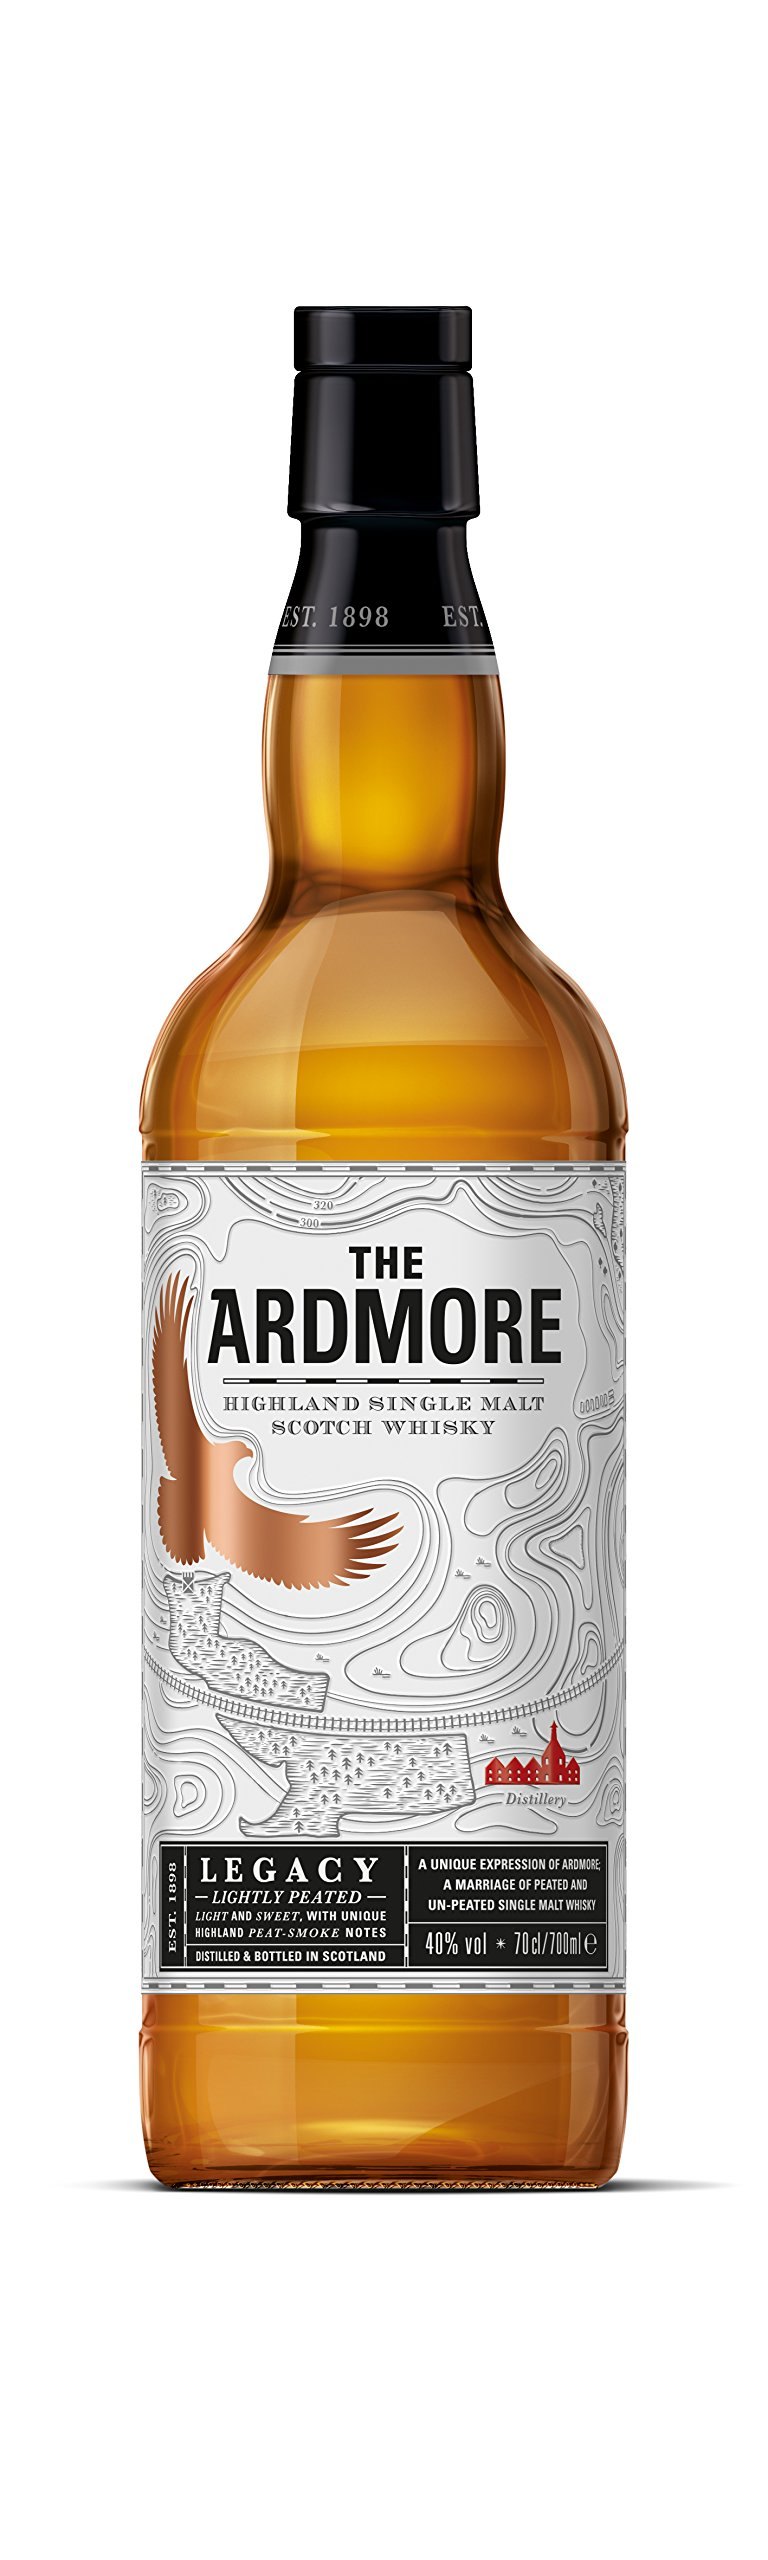 Ardmore Legacy Highland Single Malt Scotch Whisky, 70 cl